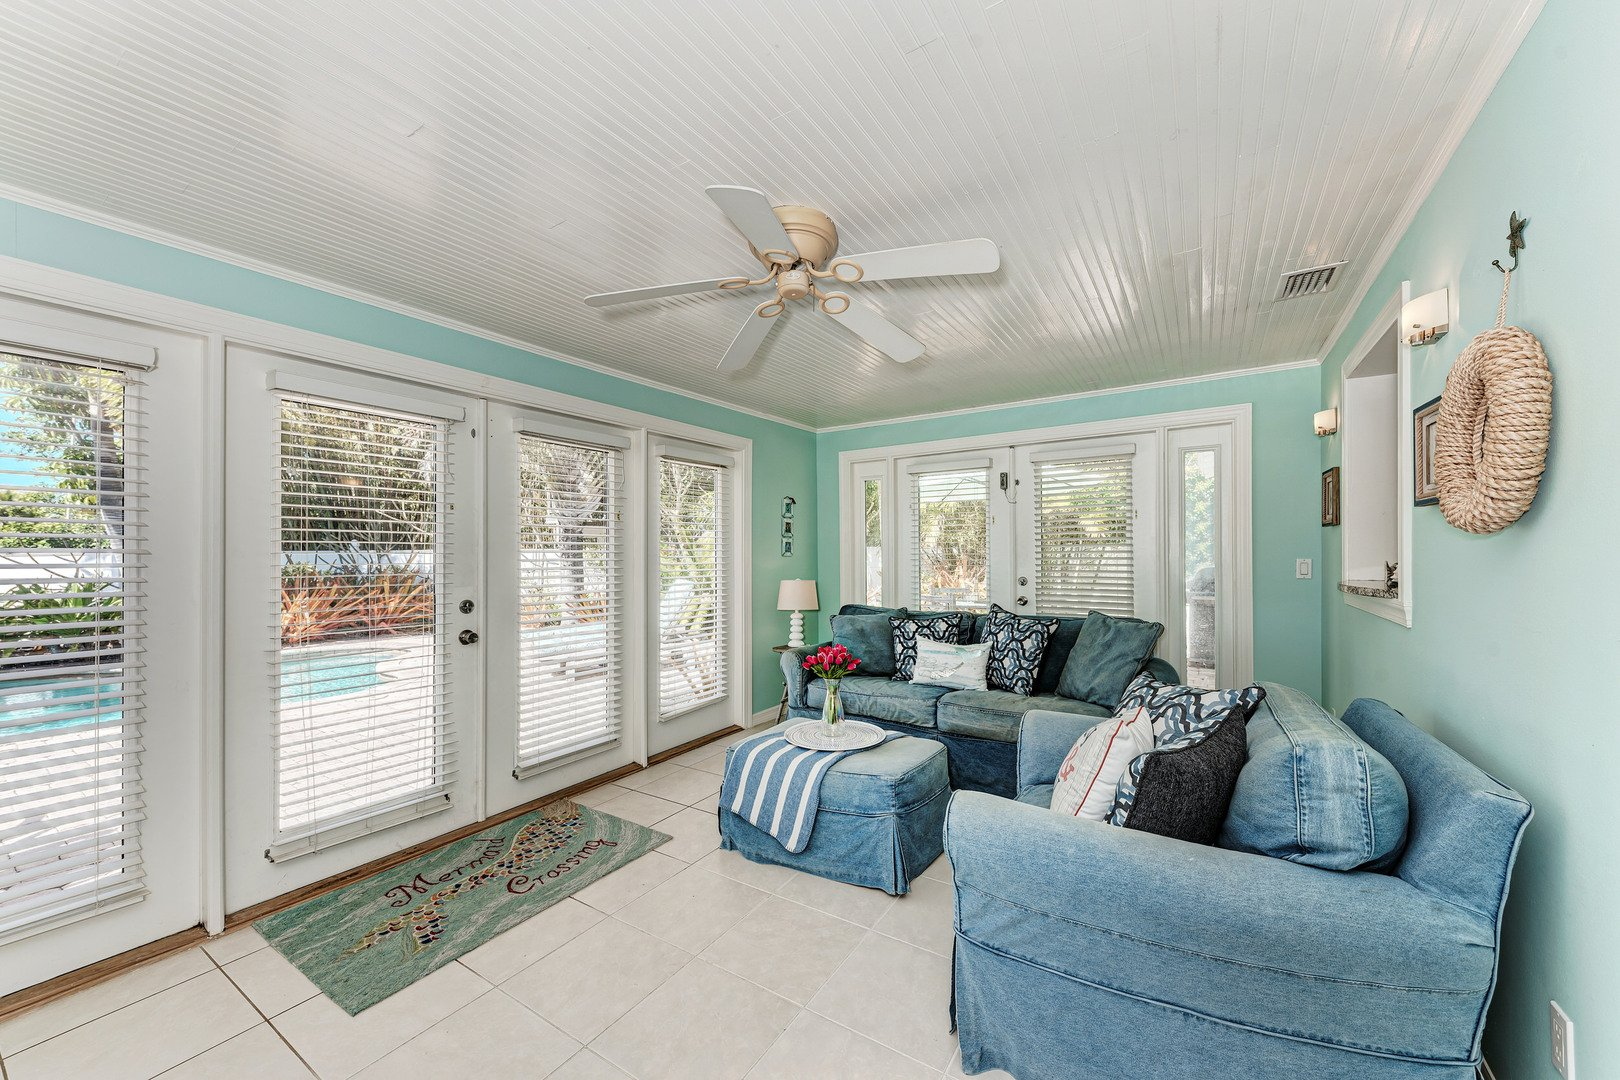 Mermaids & Manatees family room off the kitchen